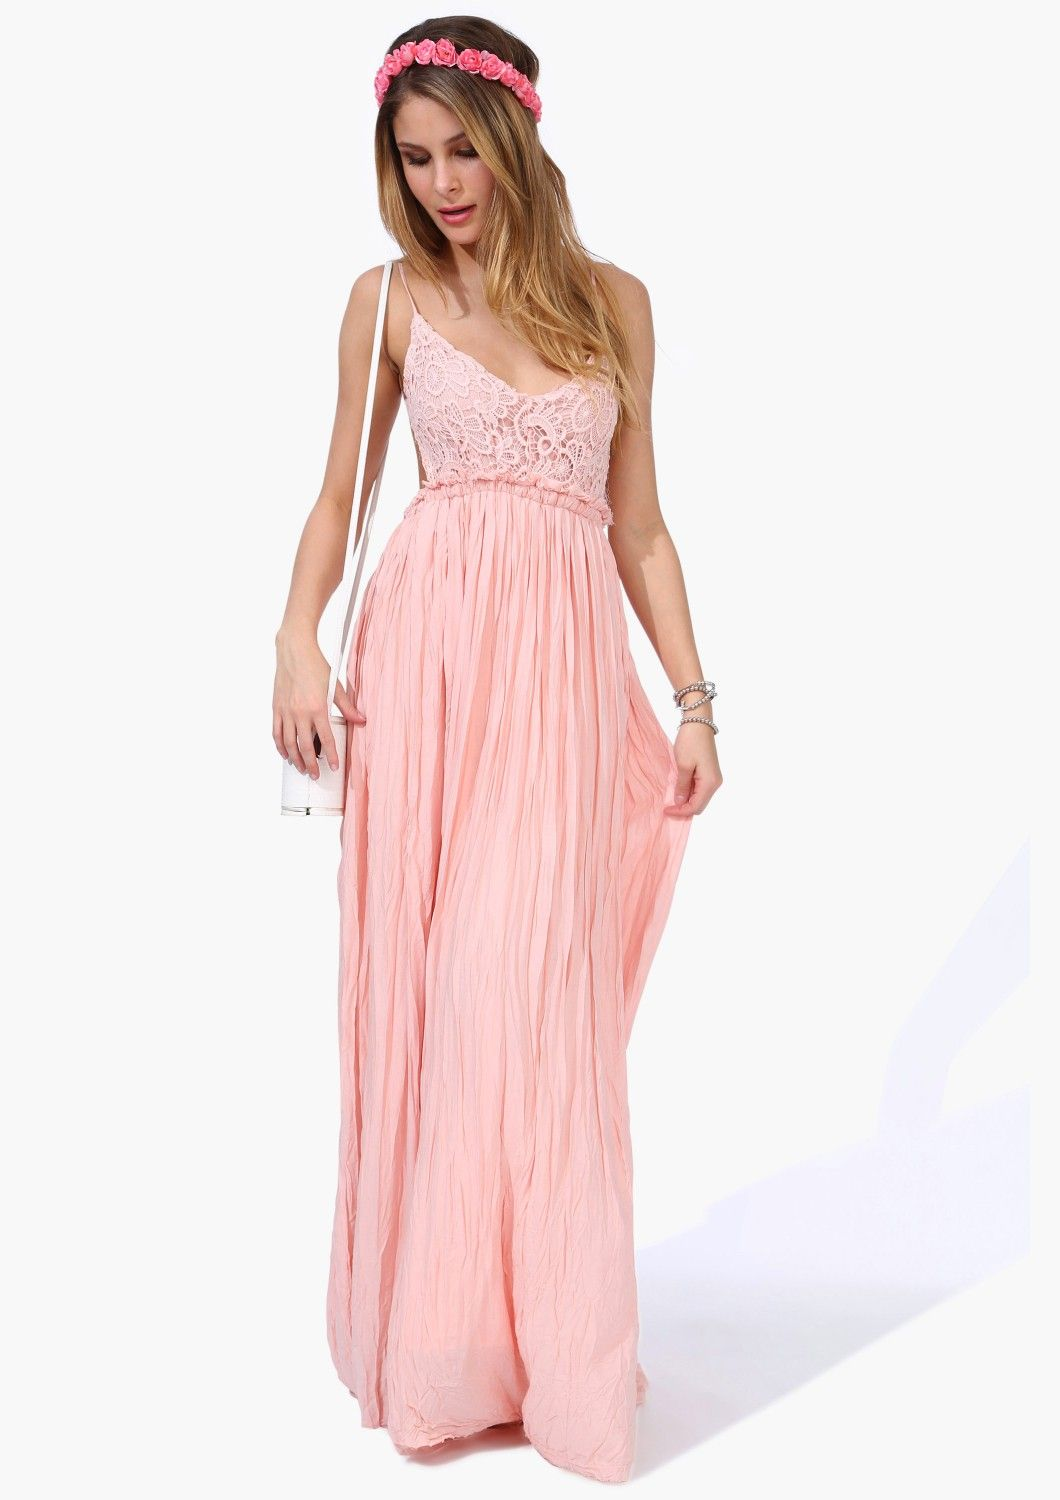 Pink empire waist maxi dress | * Kiss & Make Up Girl Obsessions ...